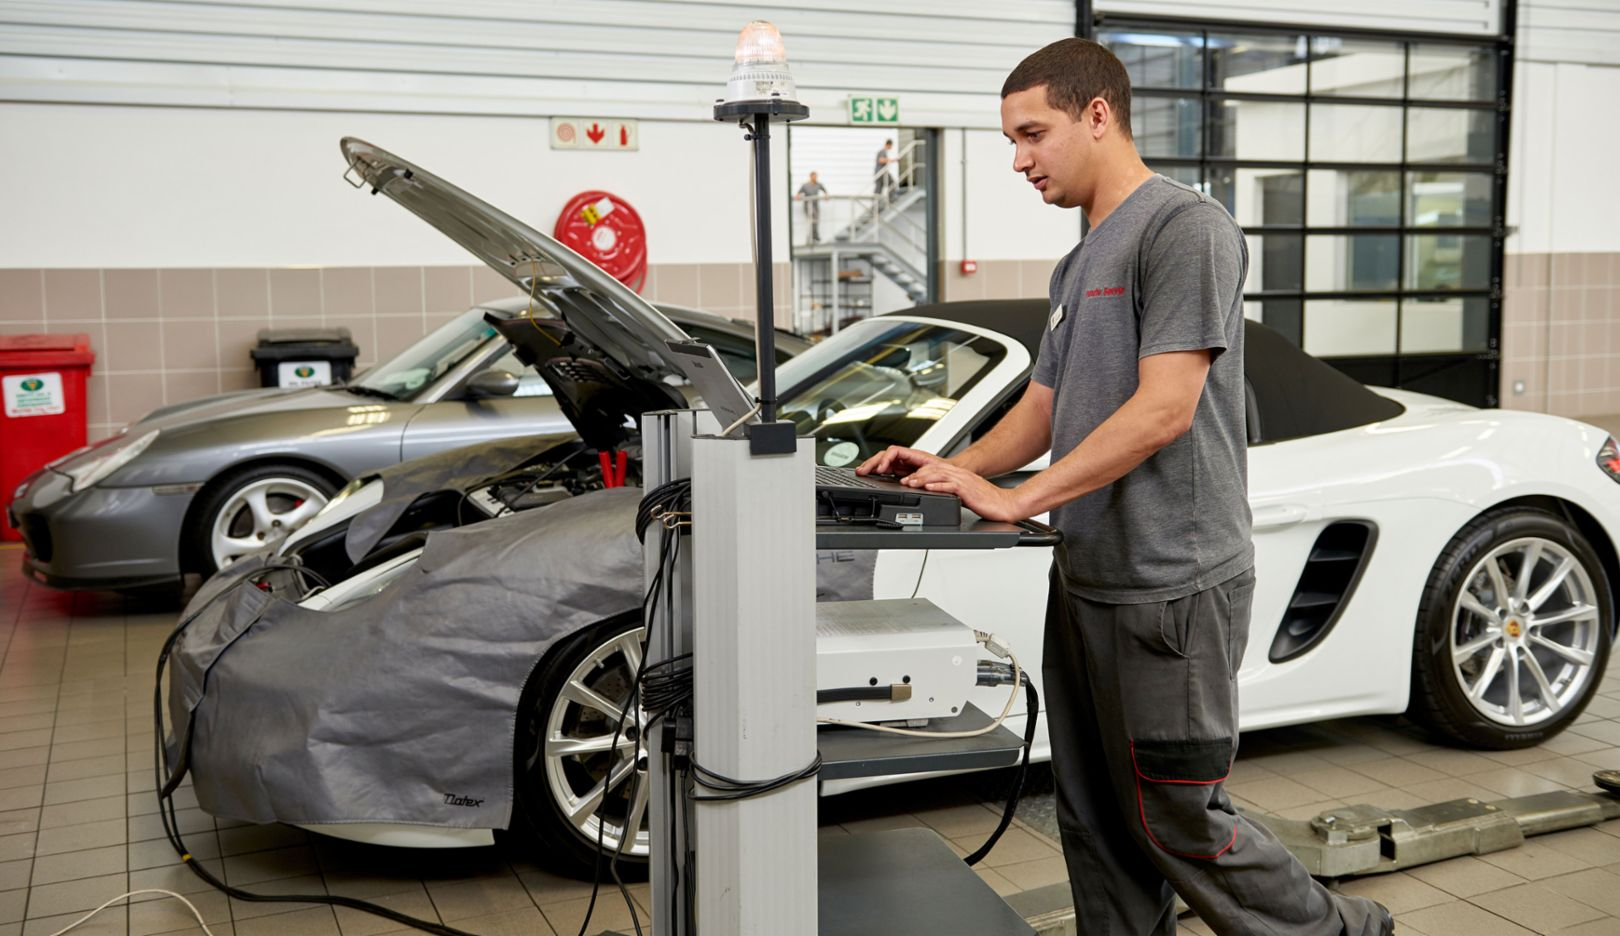 Service mechatronic, Porsche Training and Recruitment Center South Africa, 2016, Porsche AG